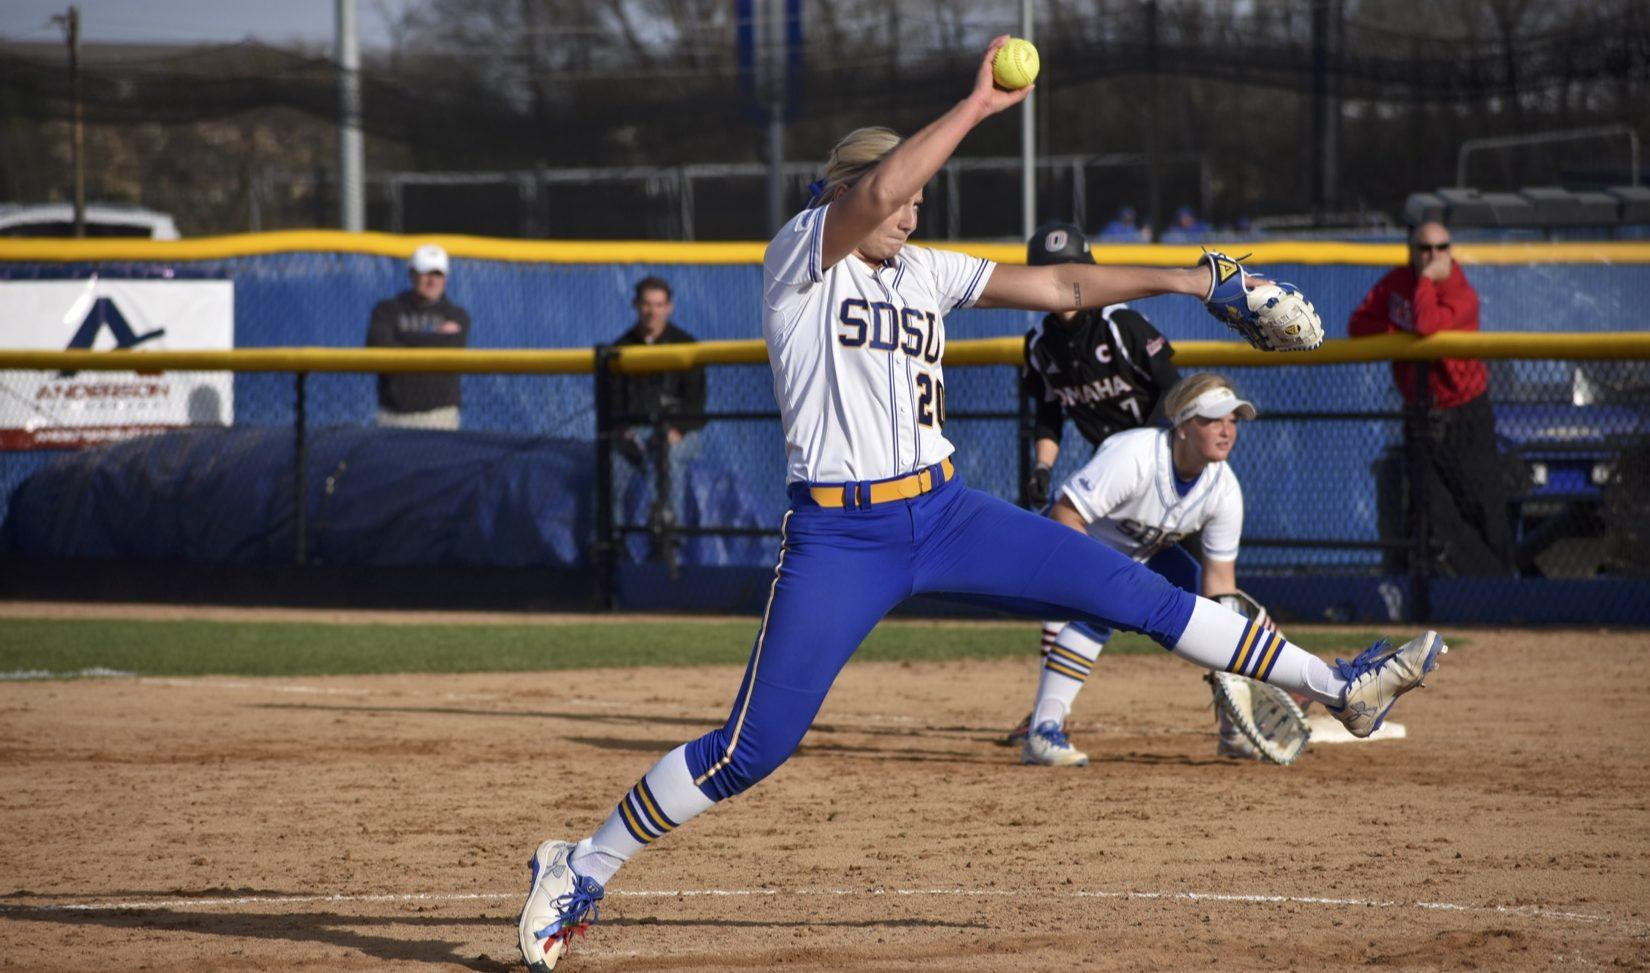 FILE PHOTO Senior Madison Hope pitches during the game against Omaha April 21, 2017. SDSU faces USD at 12 p.m. and 2 p.m. Saturday, April 7 in Sioux Falls.